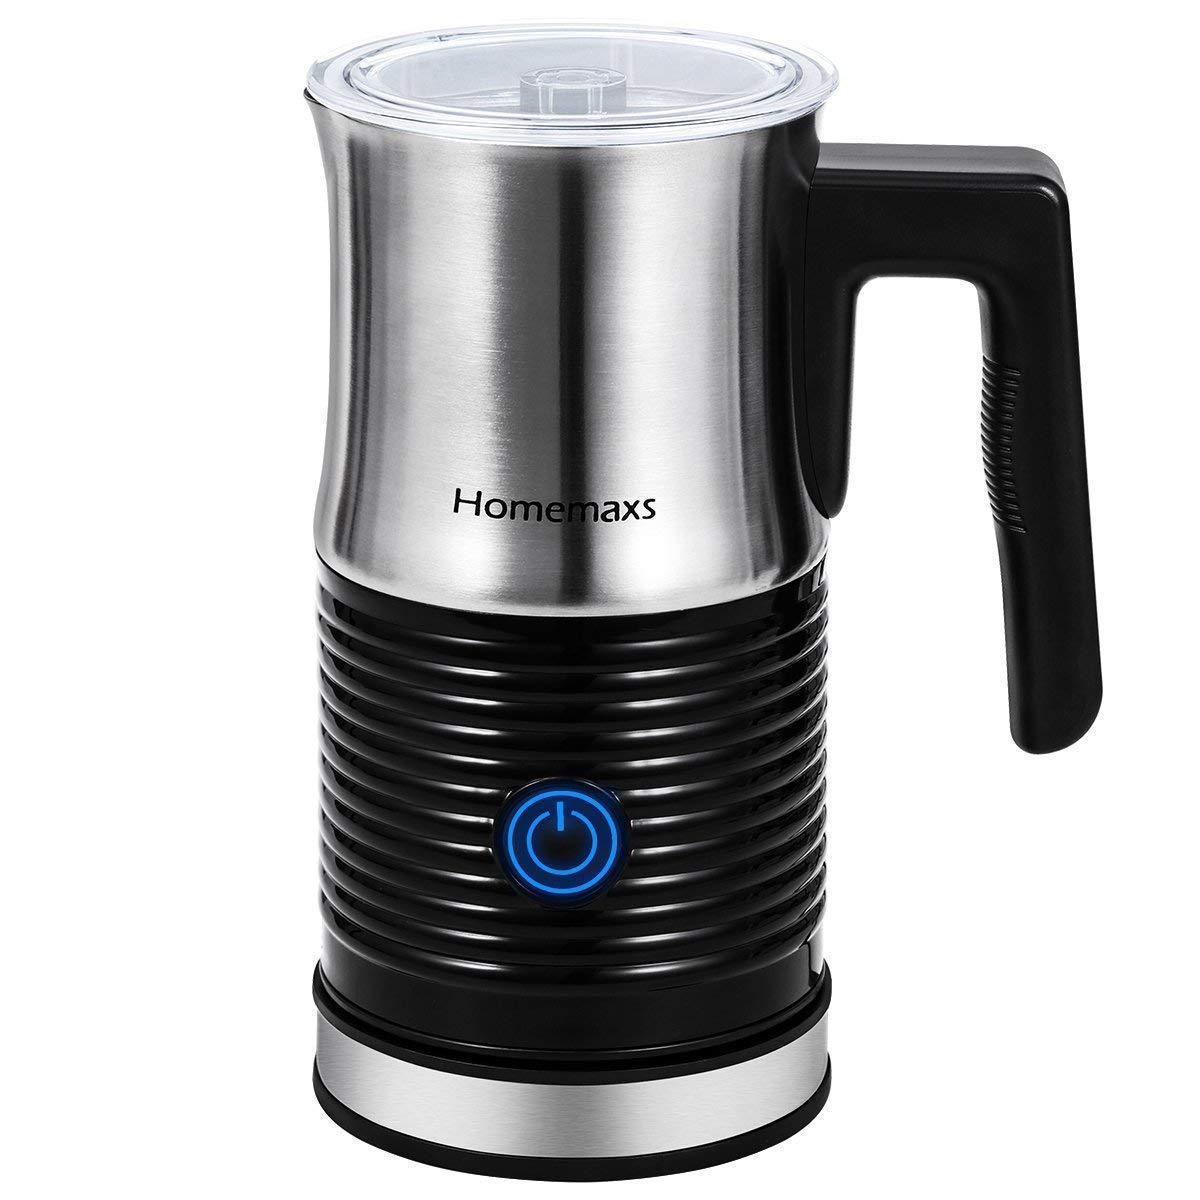 Milk Frother, Homemaxs Electric Milk Frother & Warmer with Hot or Cold Function, Anti-hot Base & Non-Stick Interior Perfect Foam for Coffee, Hot Chocolate, Cappuccino(Black) by Homemaxs (Image #1)